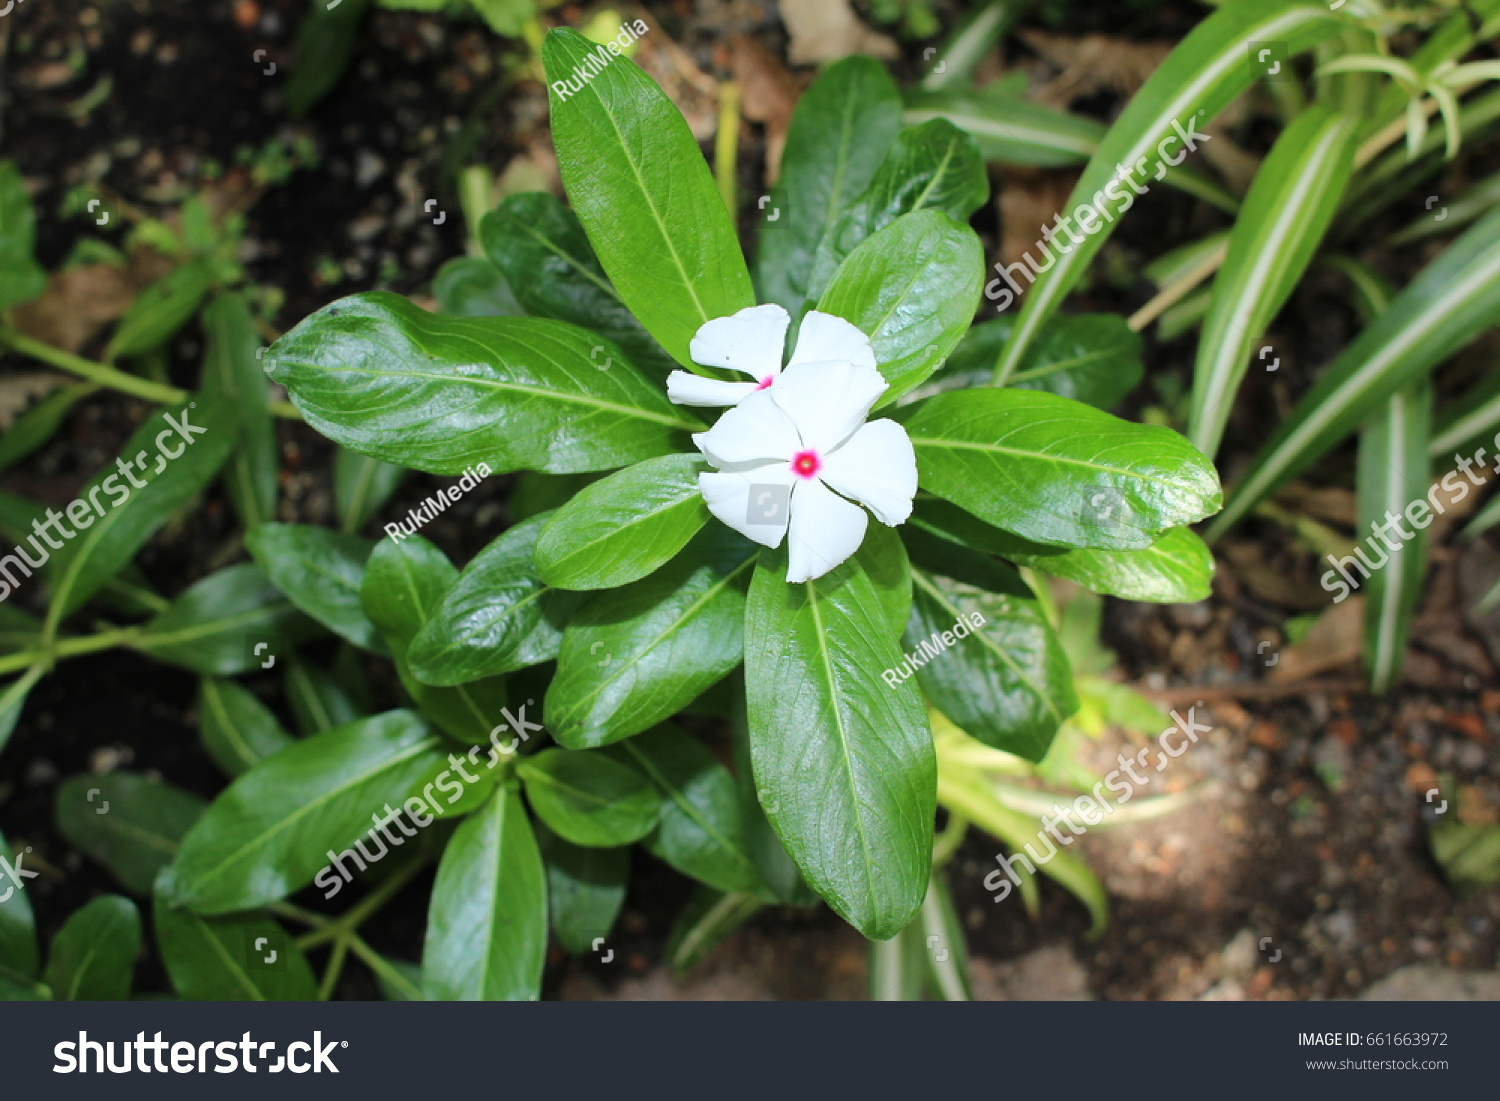 White Pink Madagascar Periwinkle Flower Or Stock Photo Edit Now